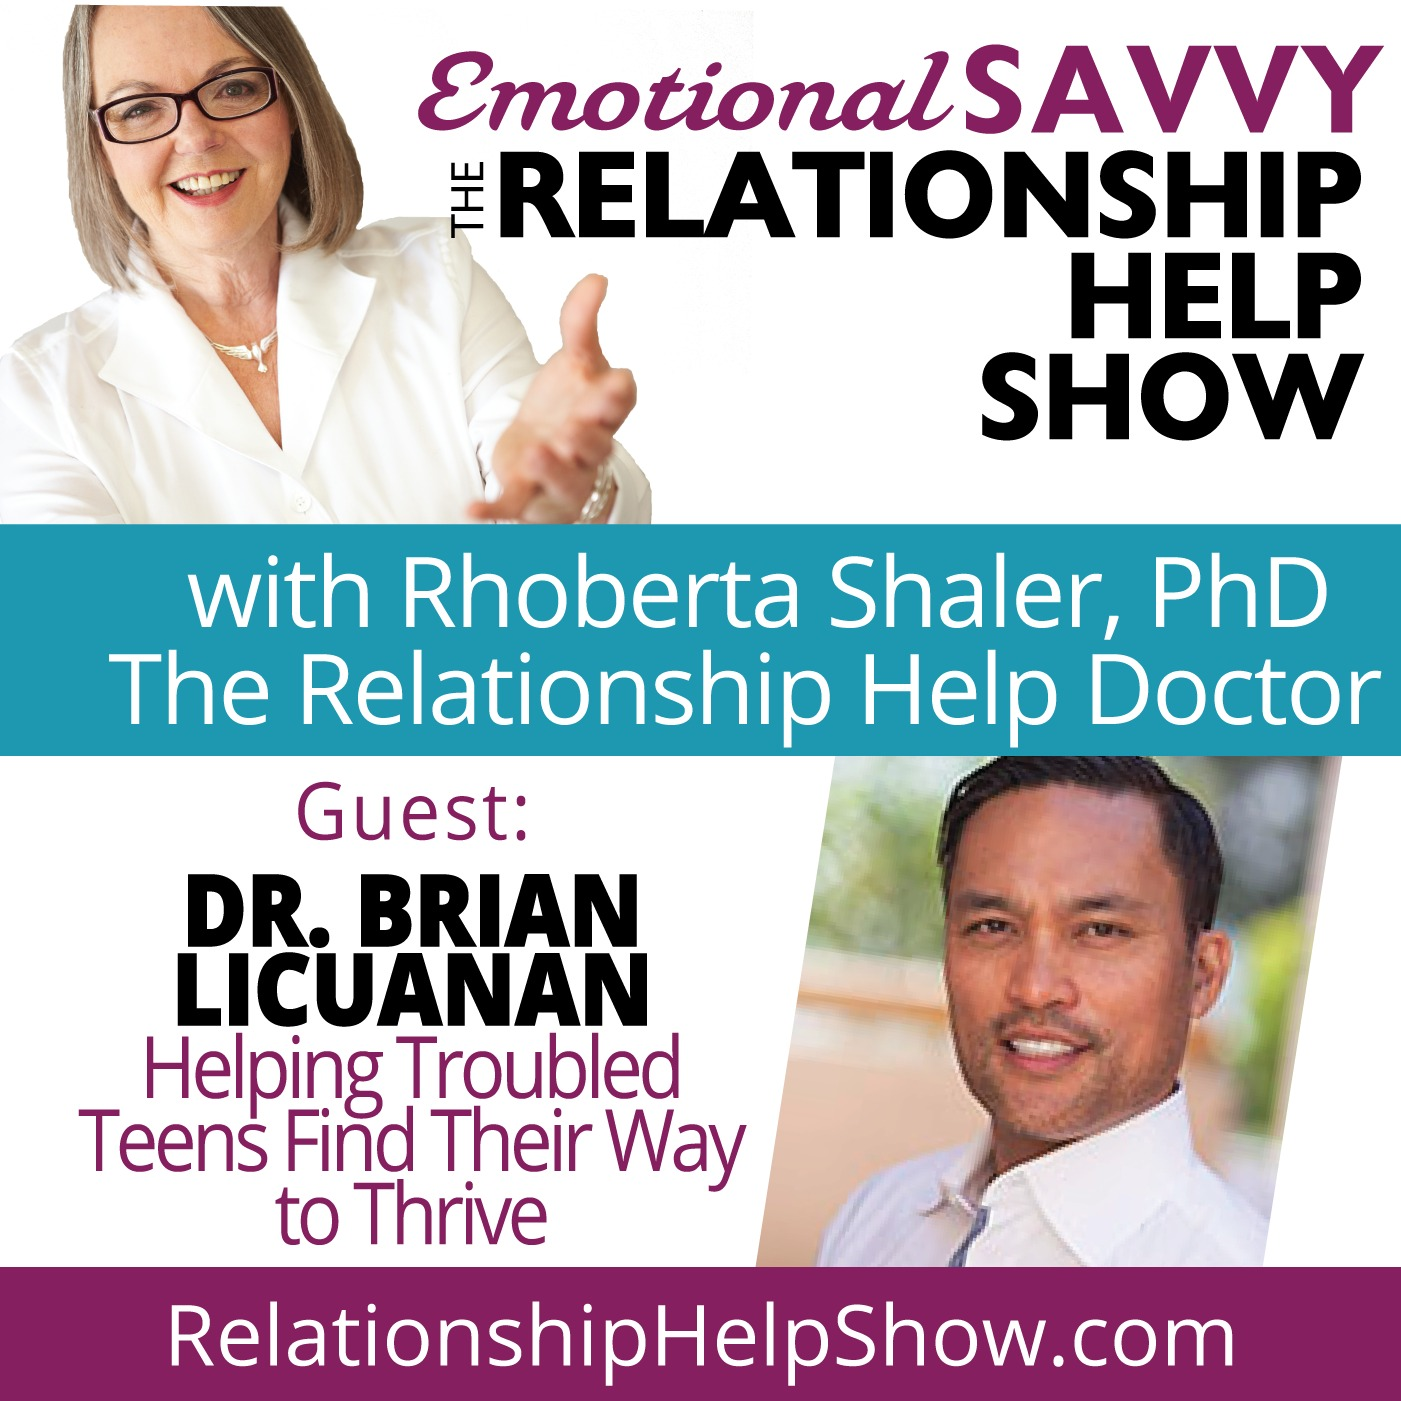 Helping Troubled Teens Find Their Way and Thrive  GUEST: Dr. Brian Licuanan